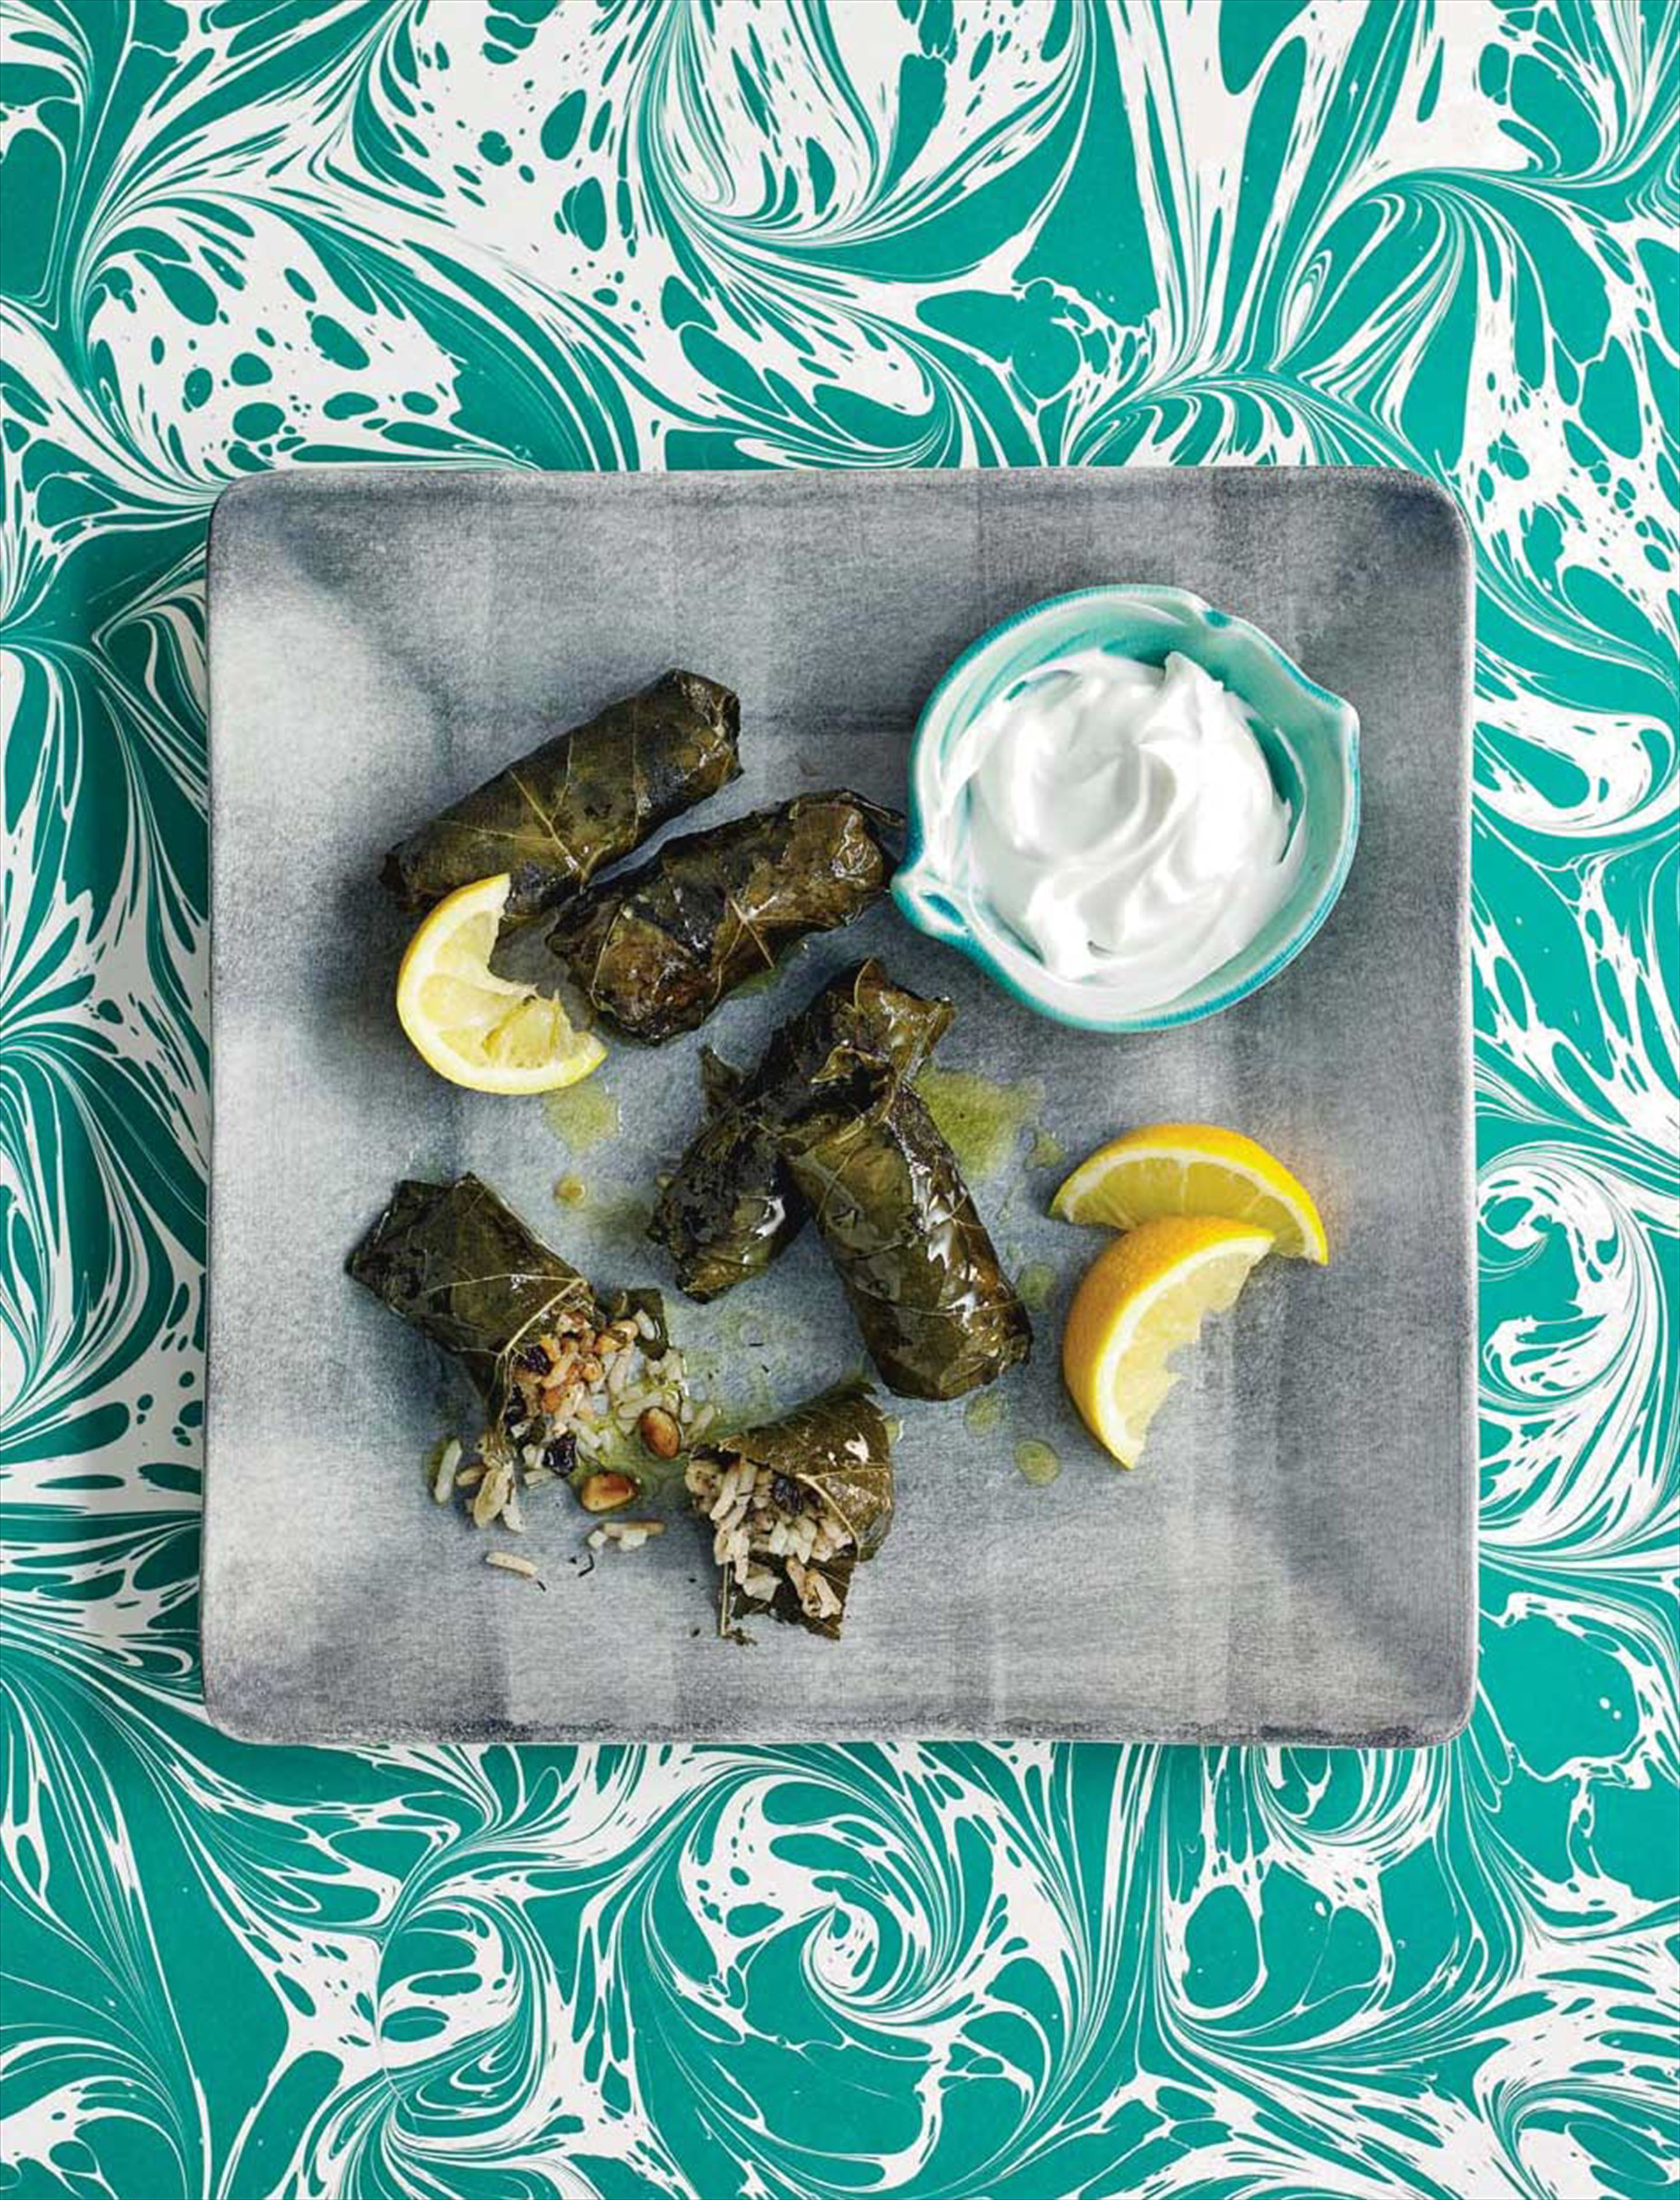 Stuffed vine leaves